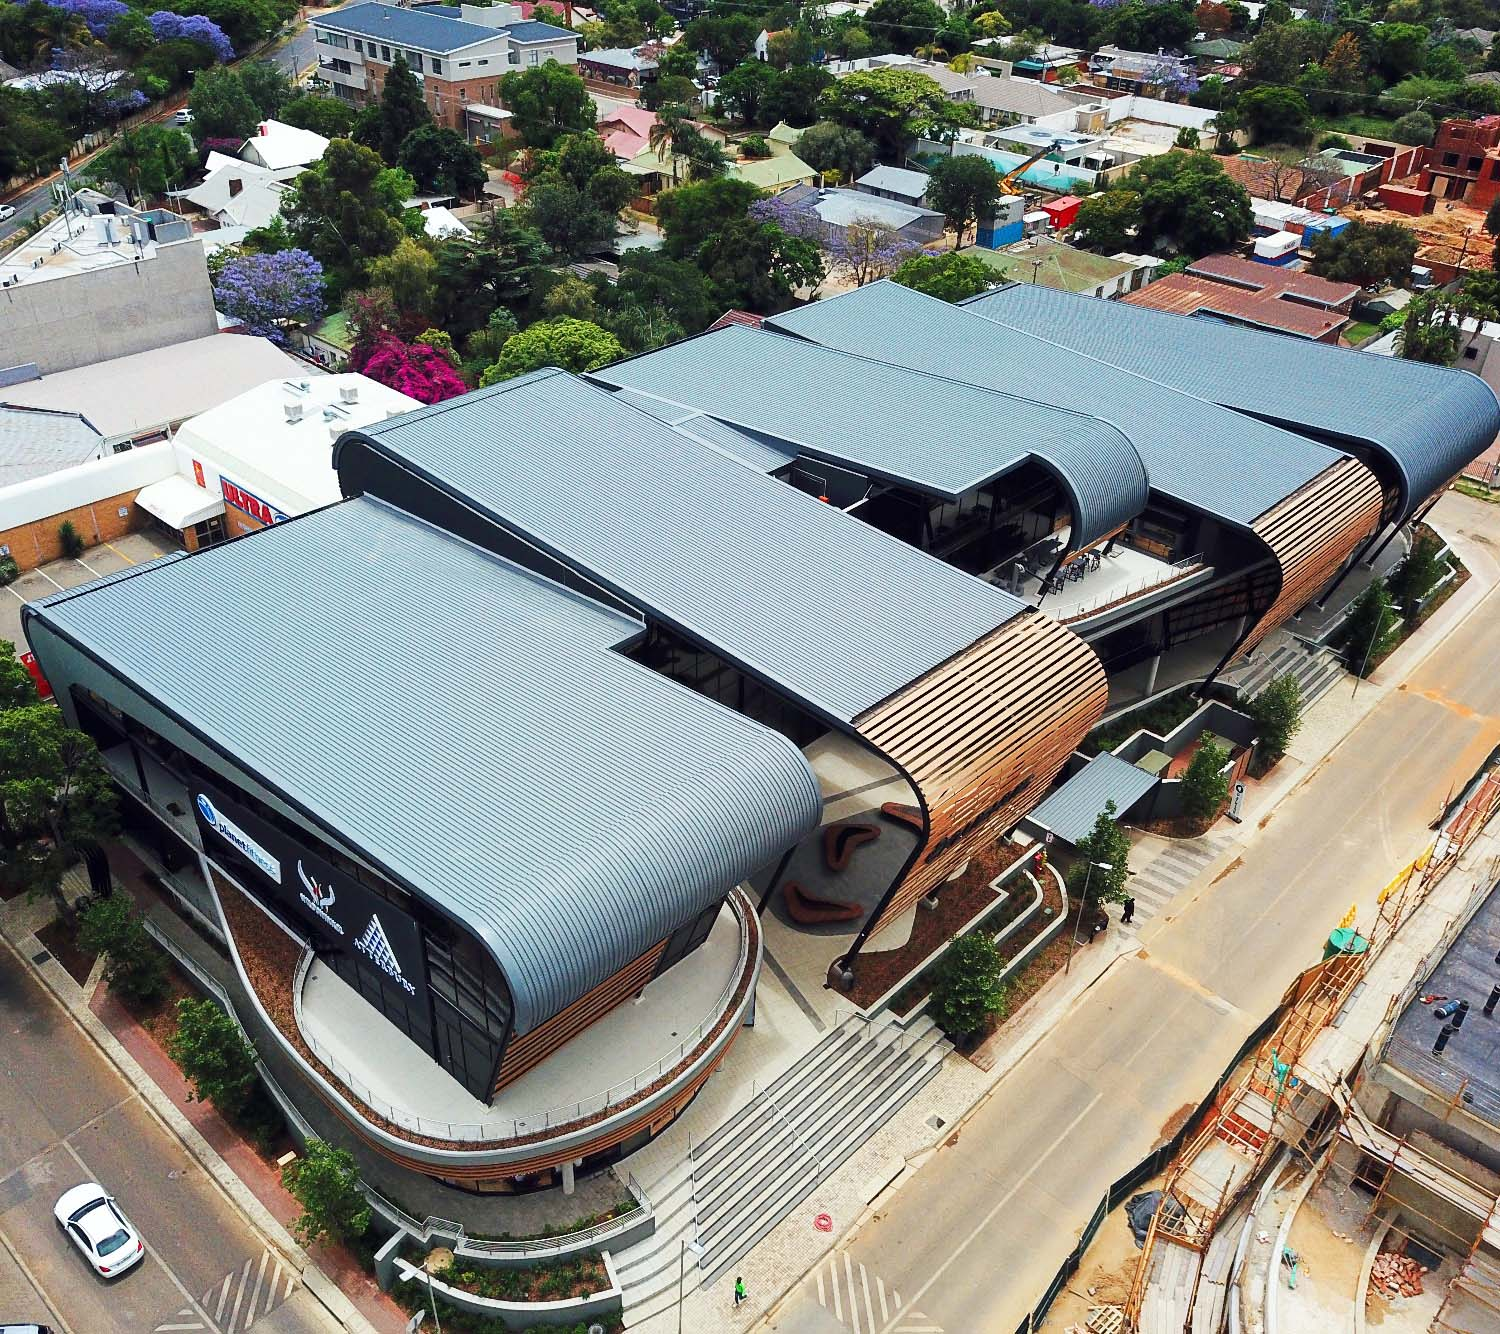 Curved roof draws attention at Club 2 Building